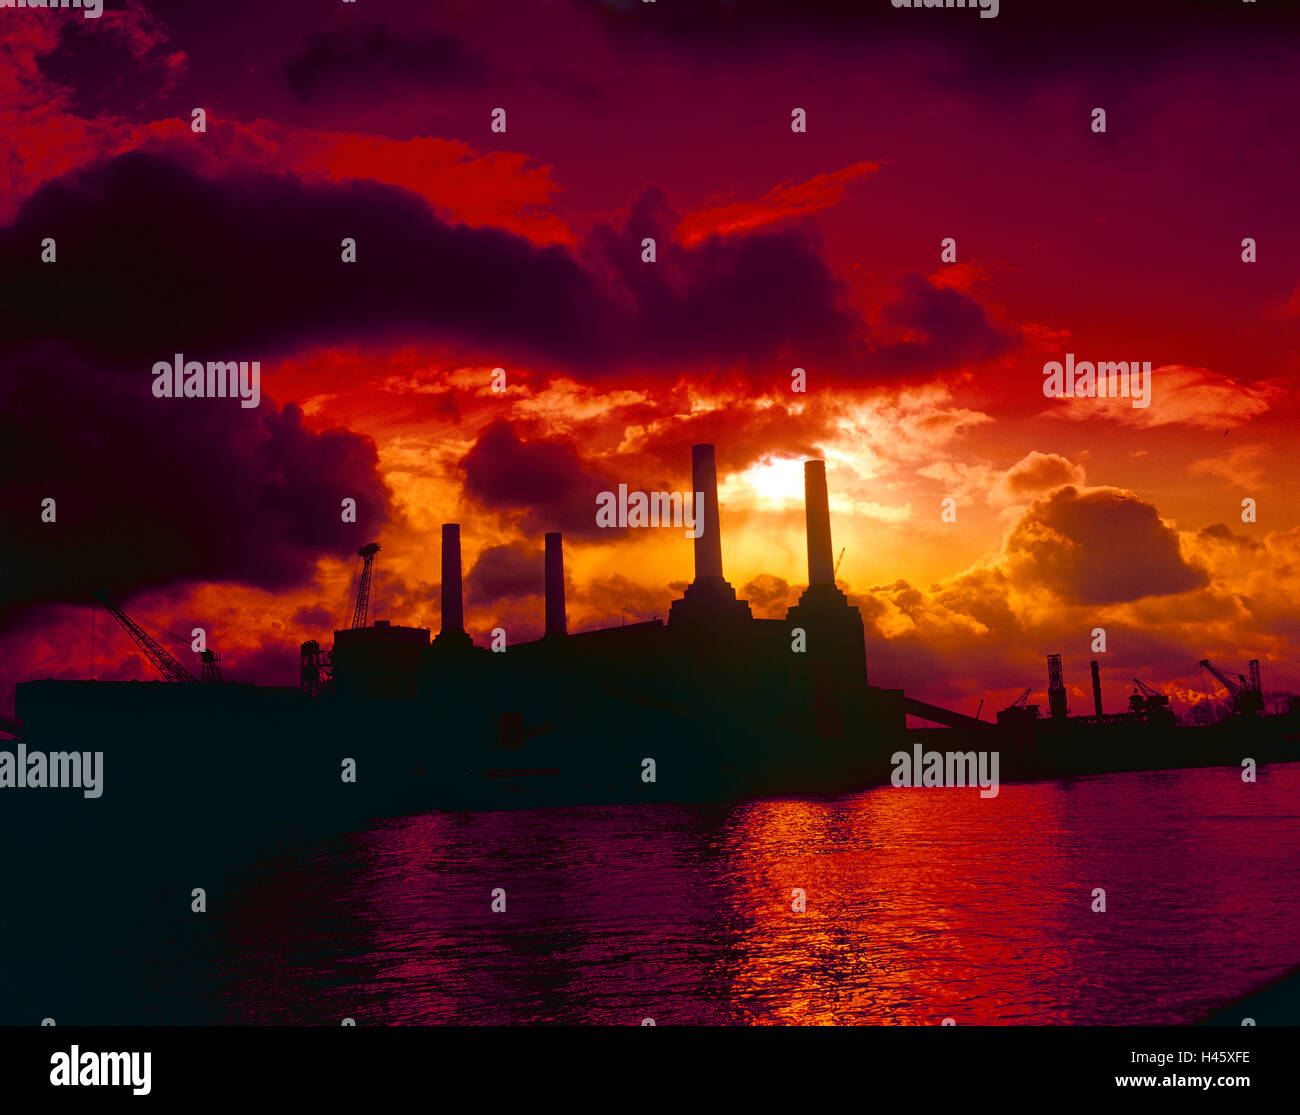 Sunset over a Powerplant - Stock Image